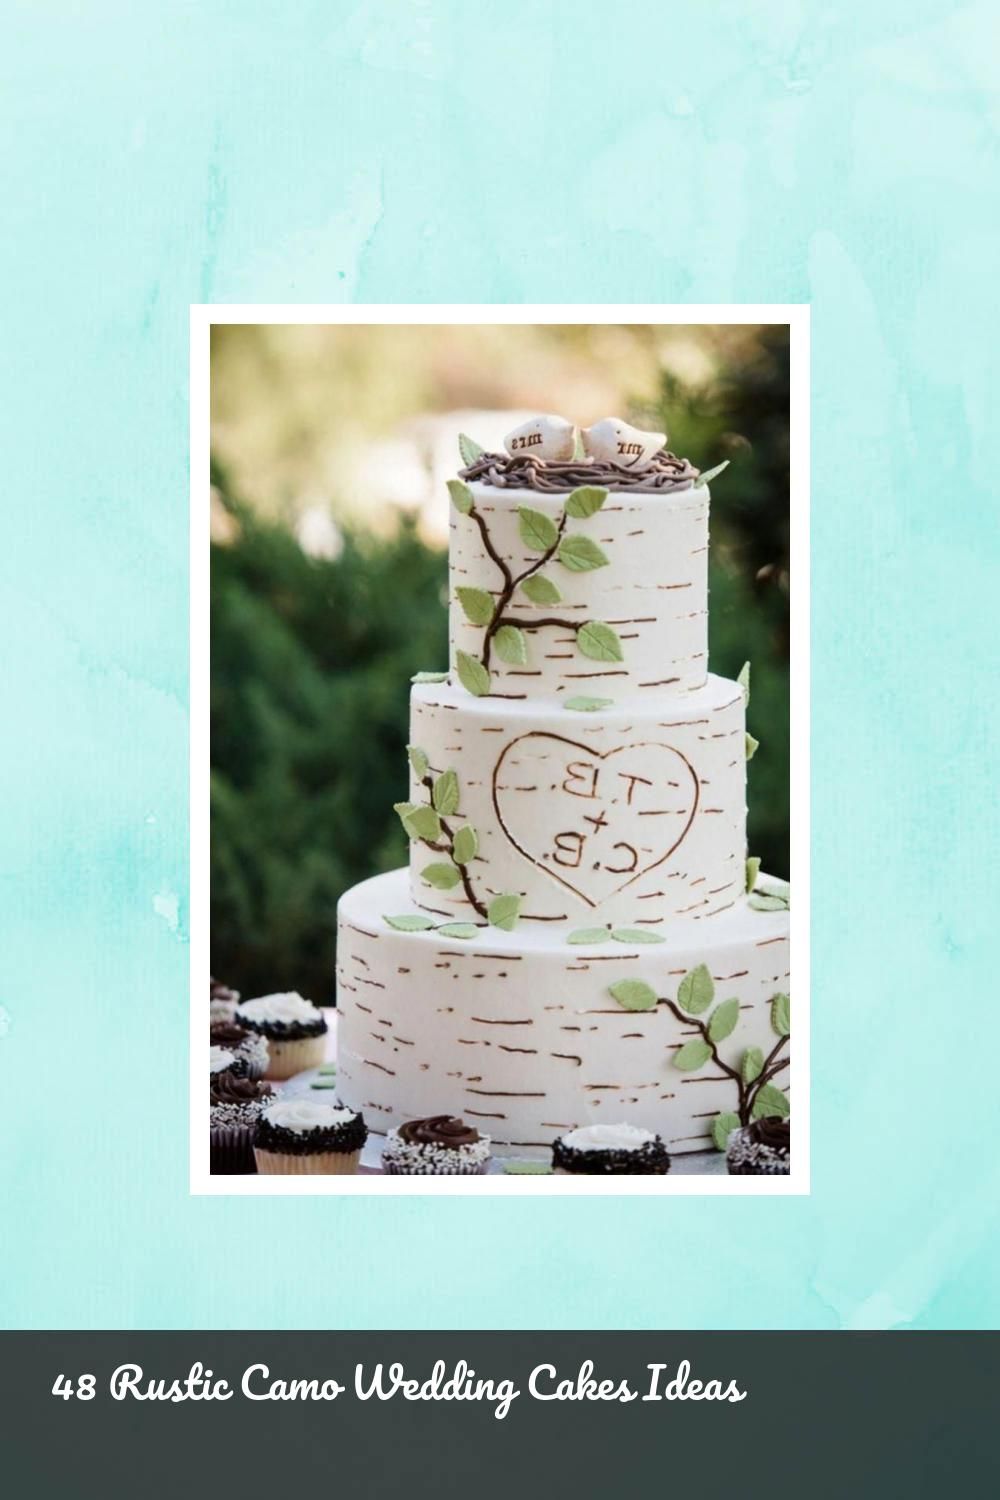 48 Rustic Camo Wedding Cakes Ideas 1